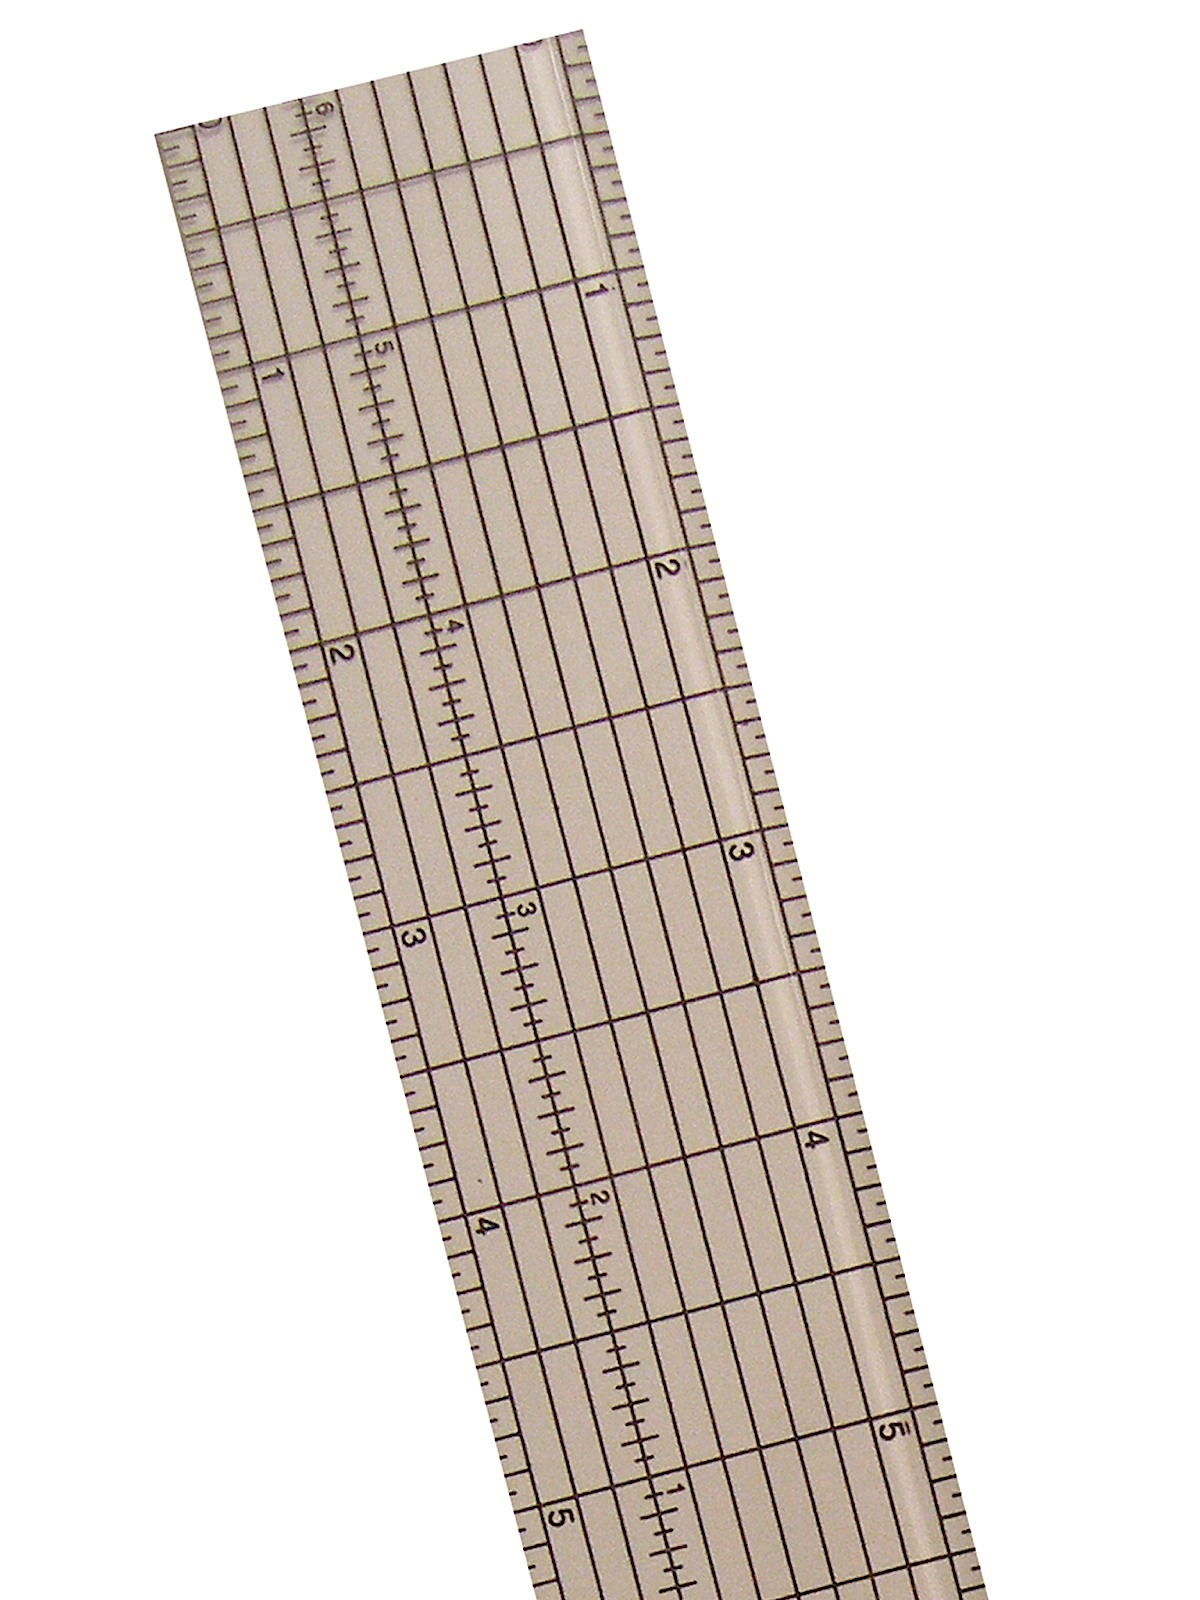 Clear Plastic Grid Rulers